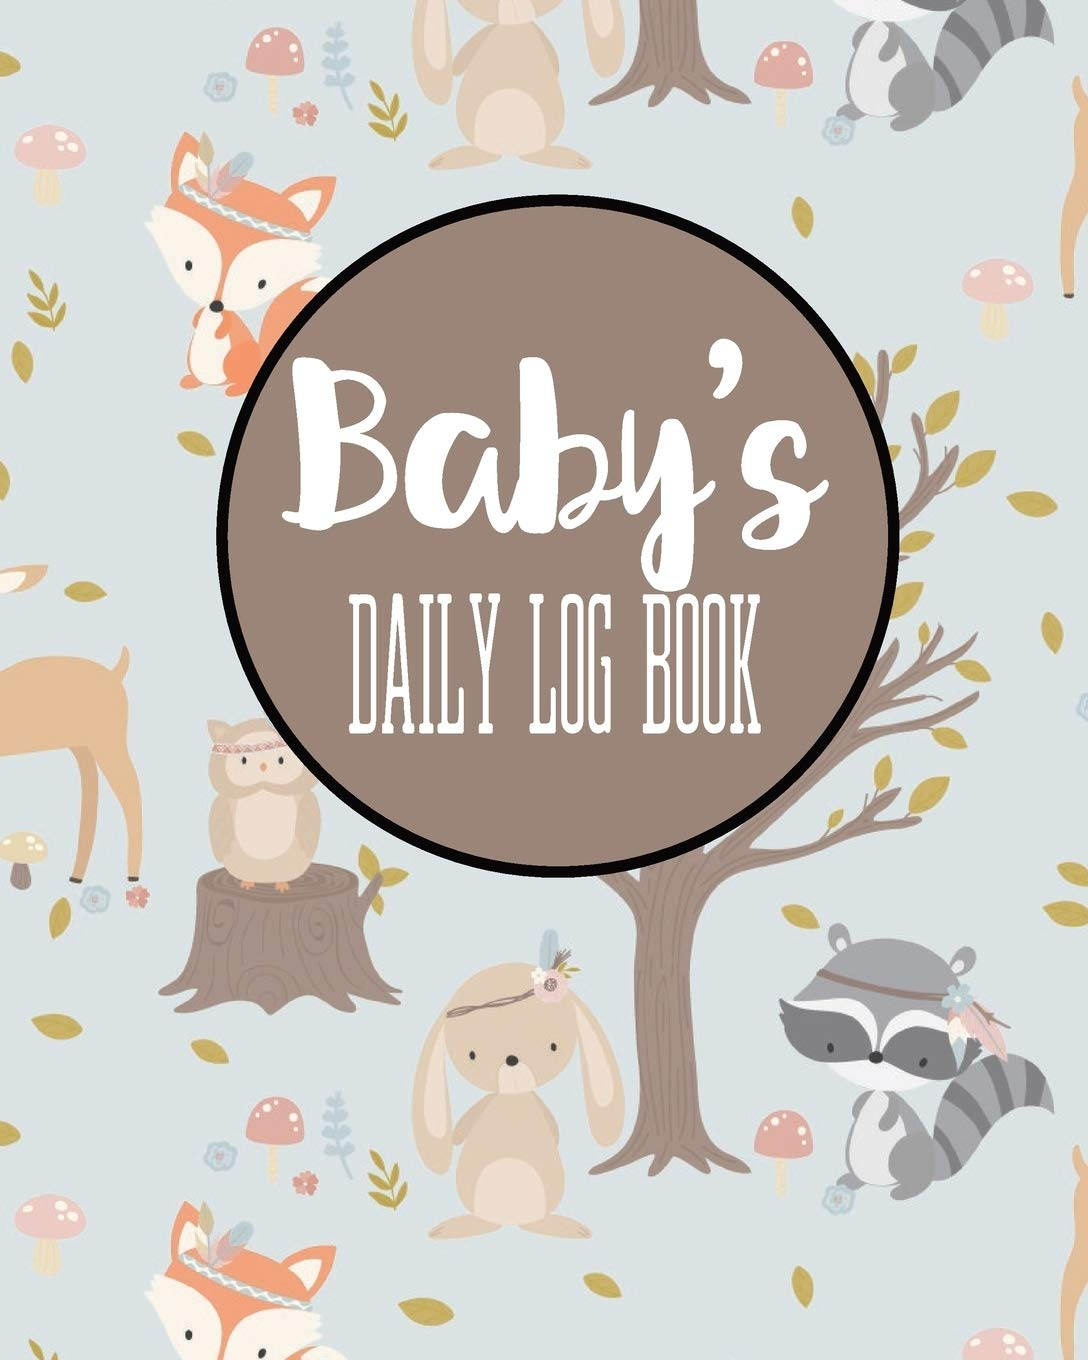 Babys Daily Log Book Activities product image